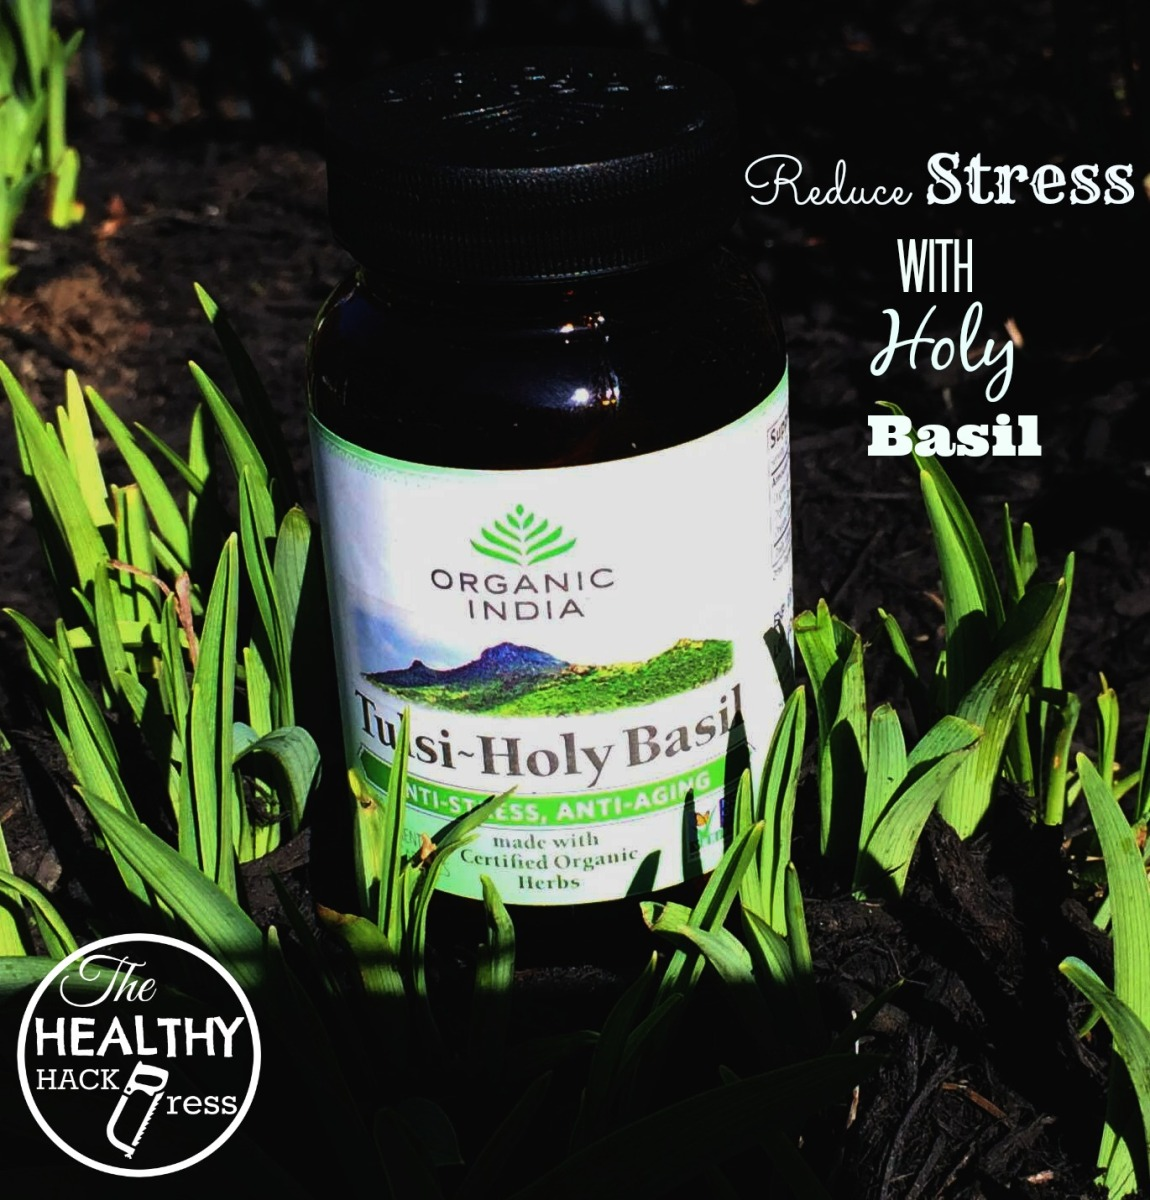 Reduce Stress with Holy Basil